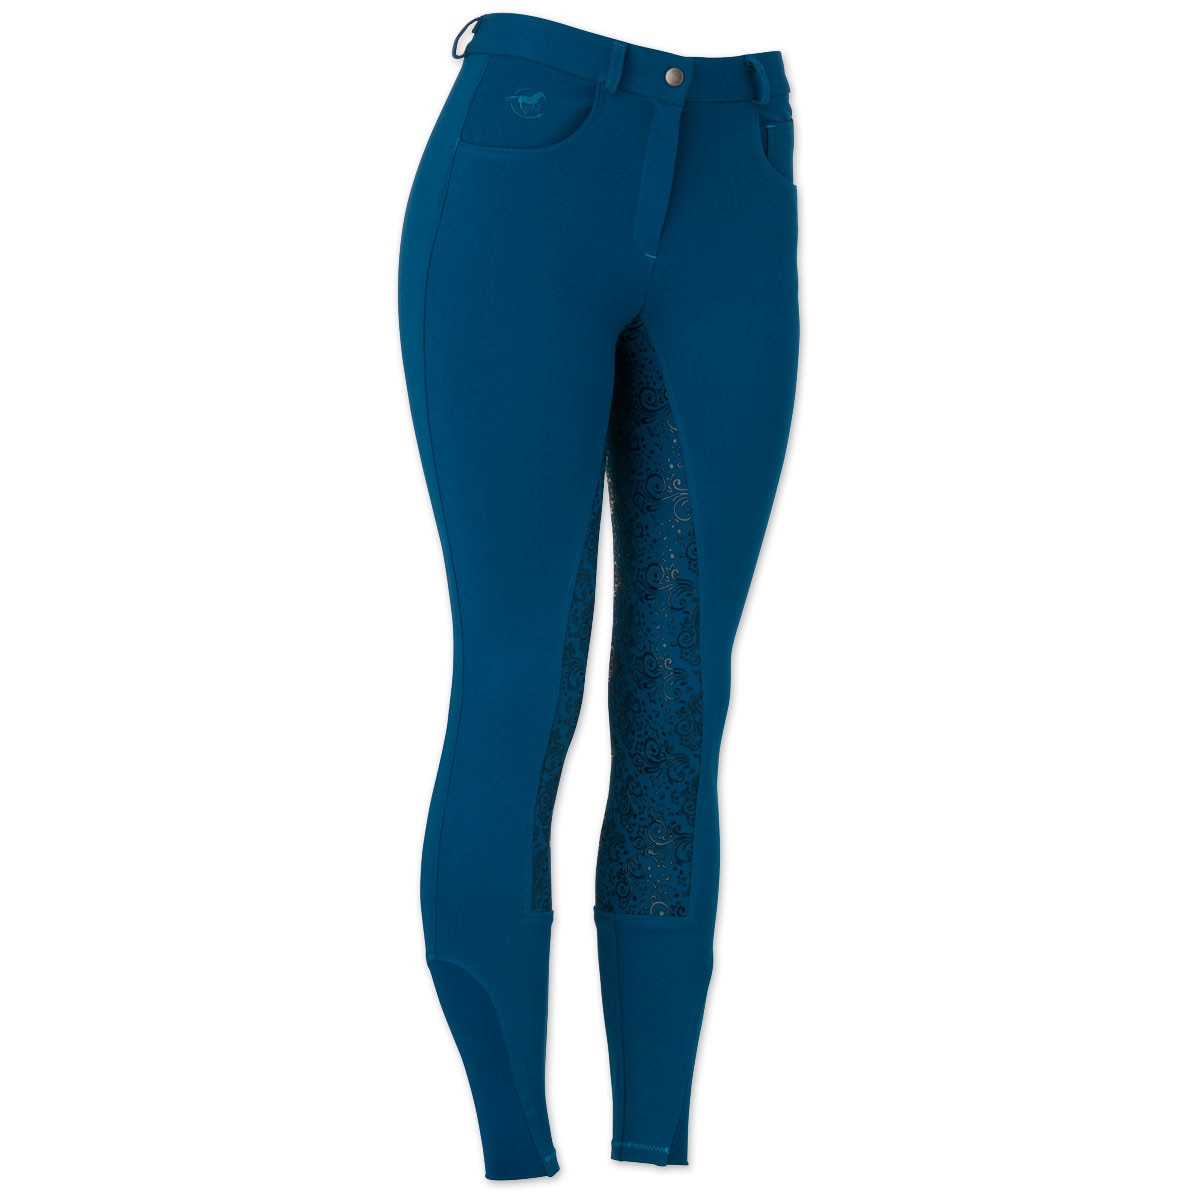 Piper Knit Breeches by SmartPak - Mid Rise Full Seat - Sale!